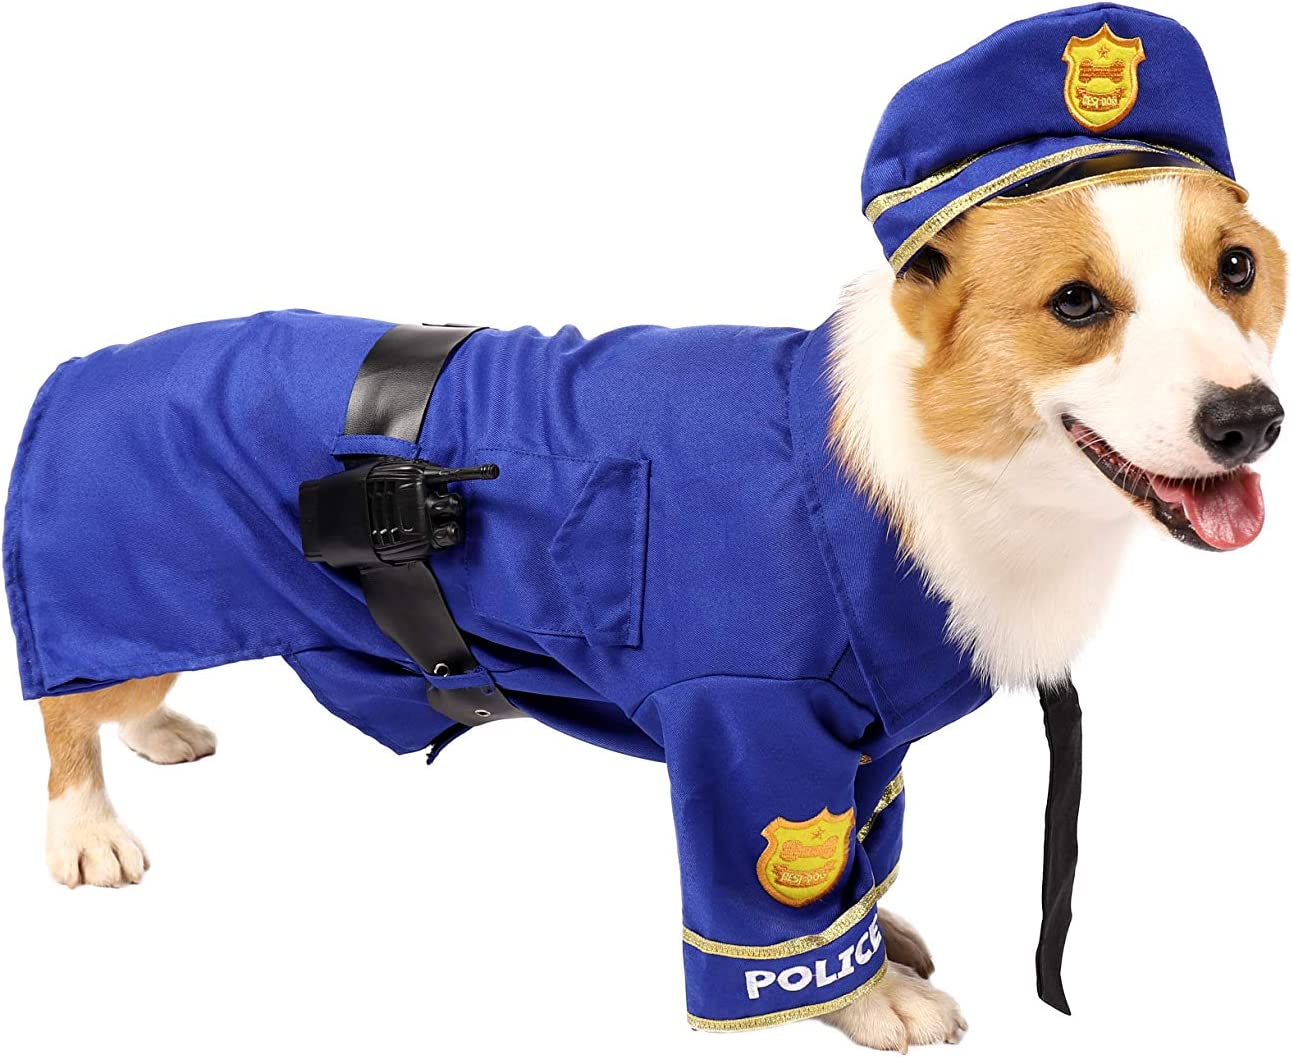 Holiday Decorations Clothes Spooktacular Creations Halloween Police Dog Pet Costume for Halloween Dress-up Party Carnival Cosplay Role Play